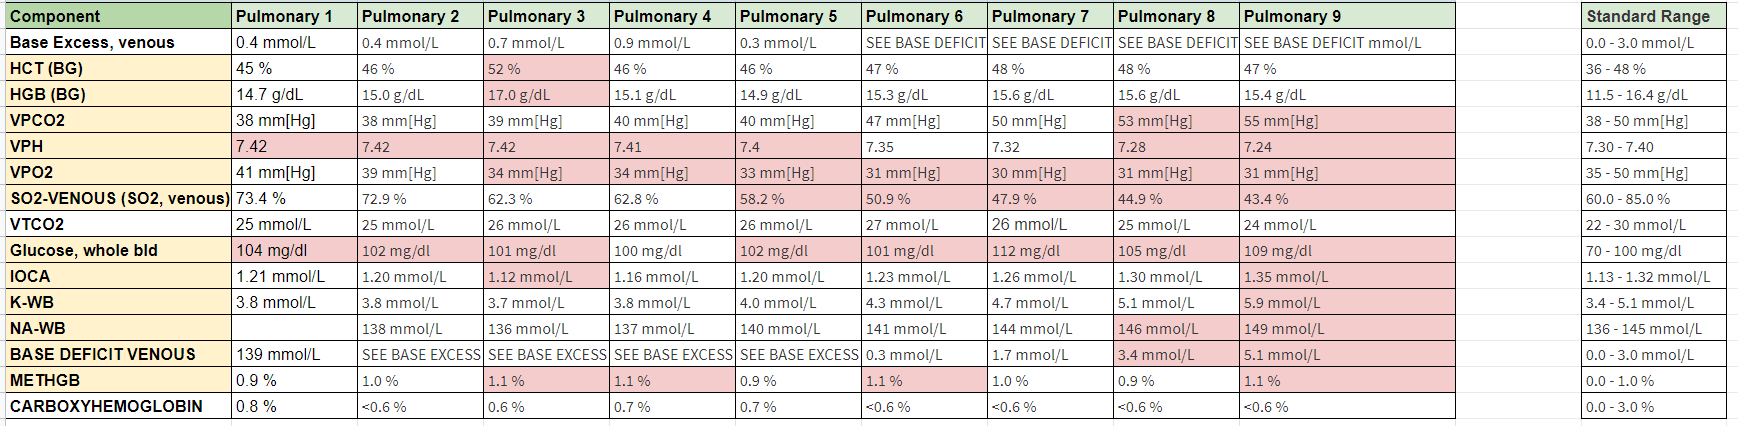 icpet blood test pulmonary